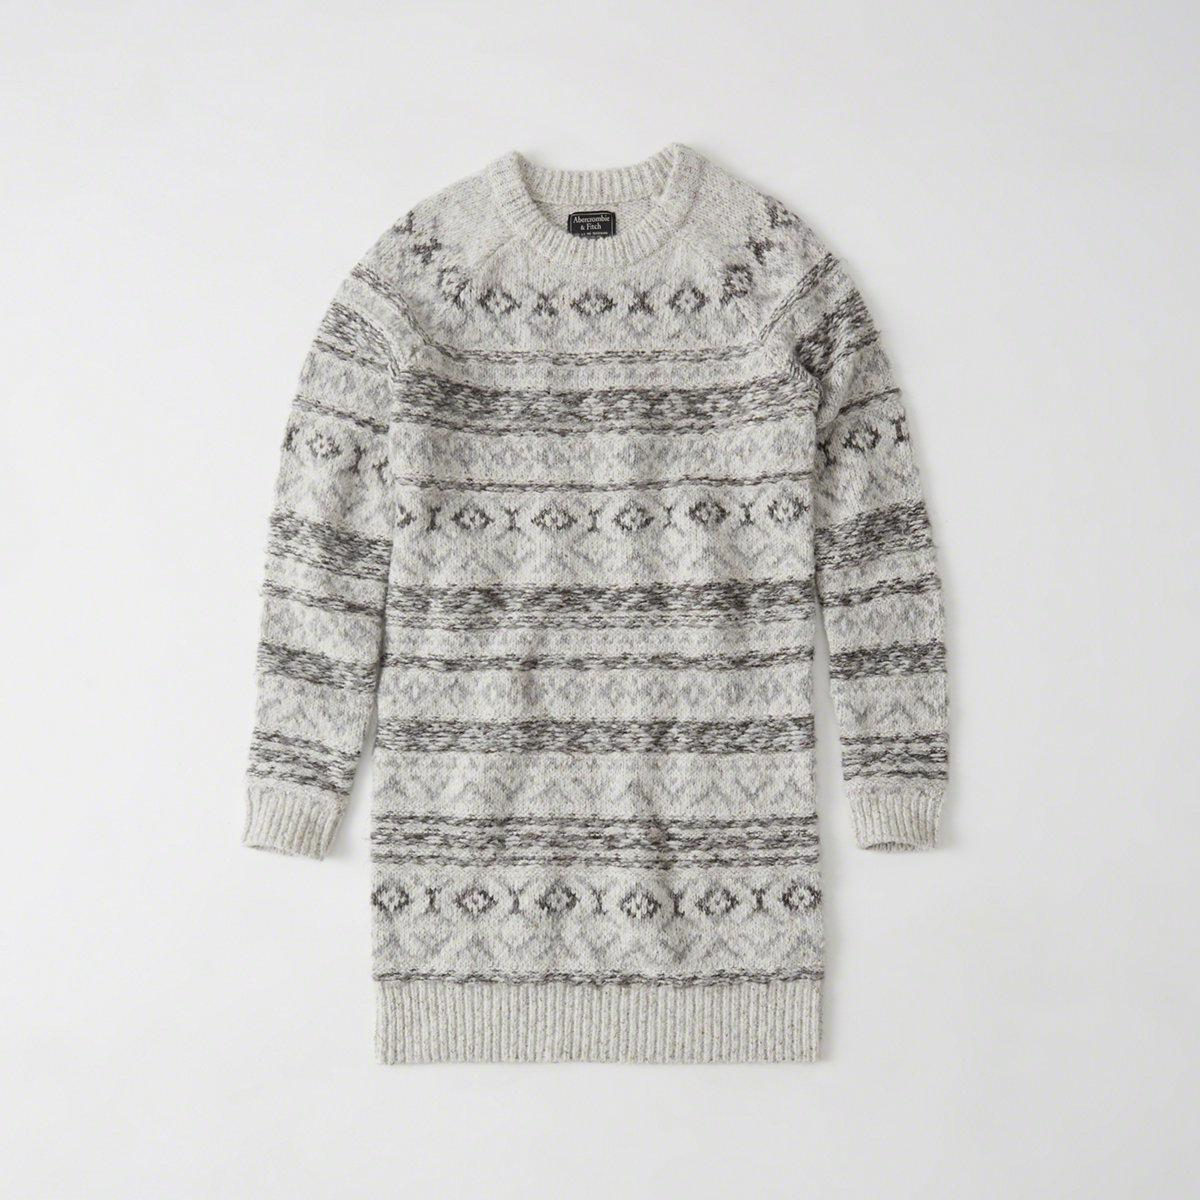 Abercrombie & fitch Fair Isle Sweater Dress in Gray | Lyst